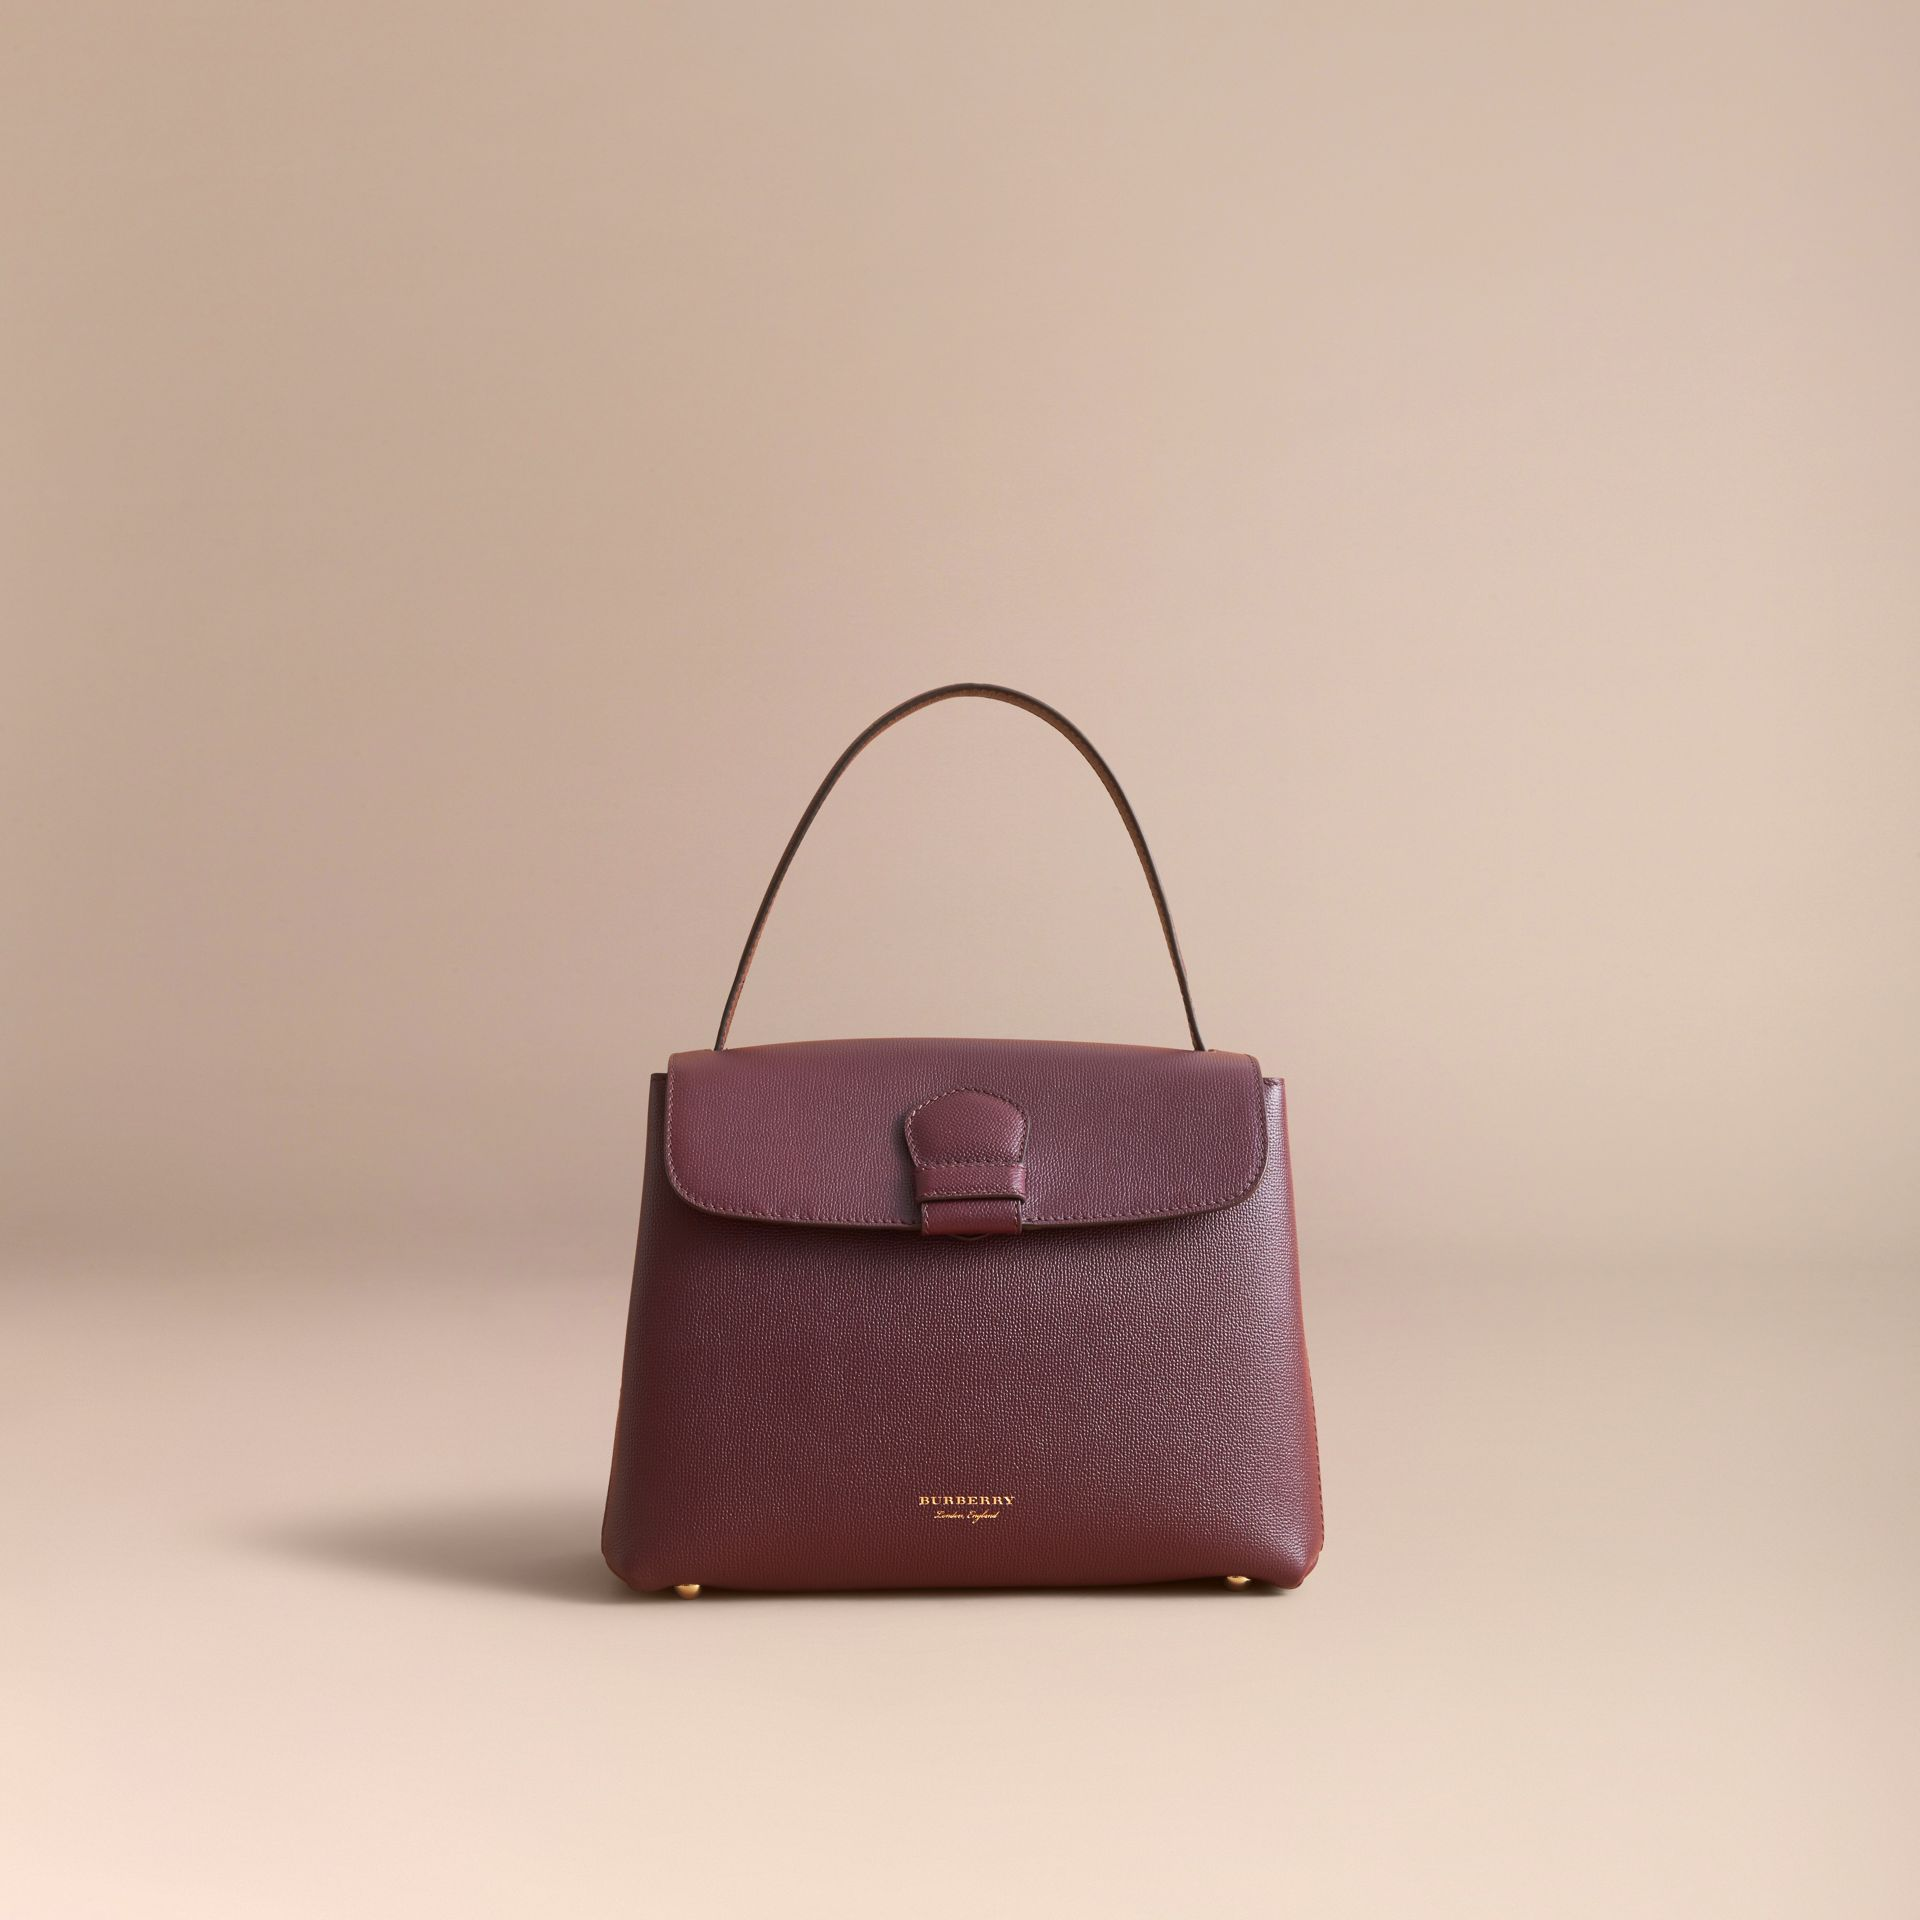 Medium Grainy Leather and House Check Tote Bag in Mahogany Red - Women | Burberry Hong Kong - gallery image 8